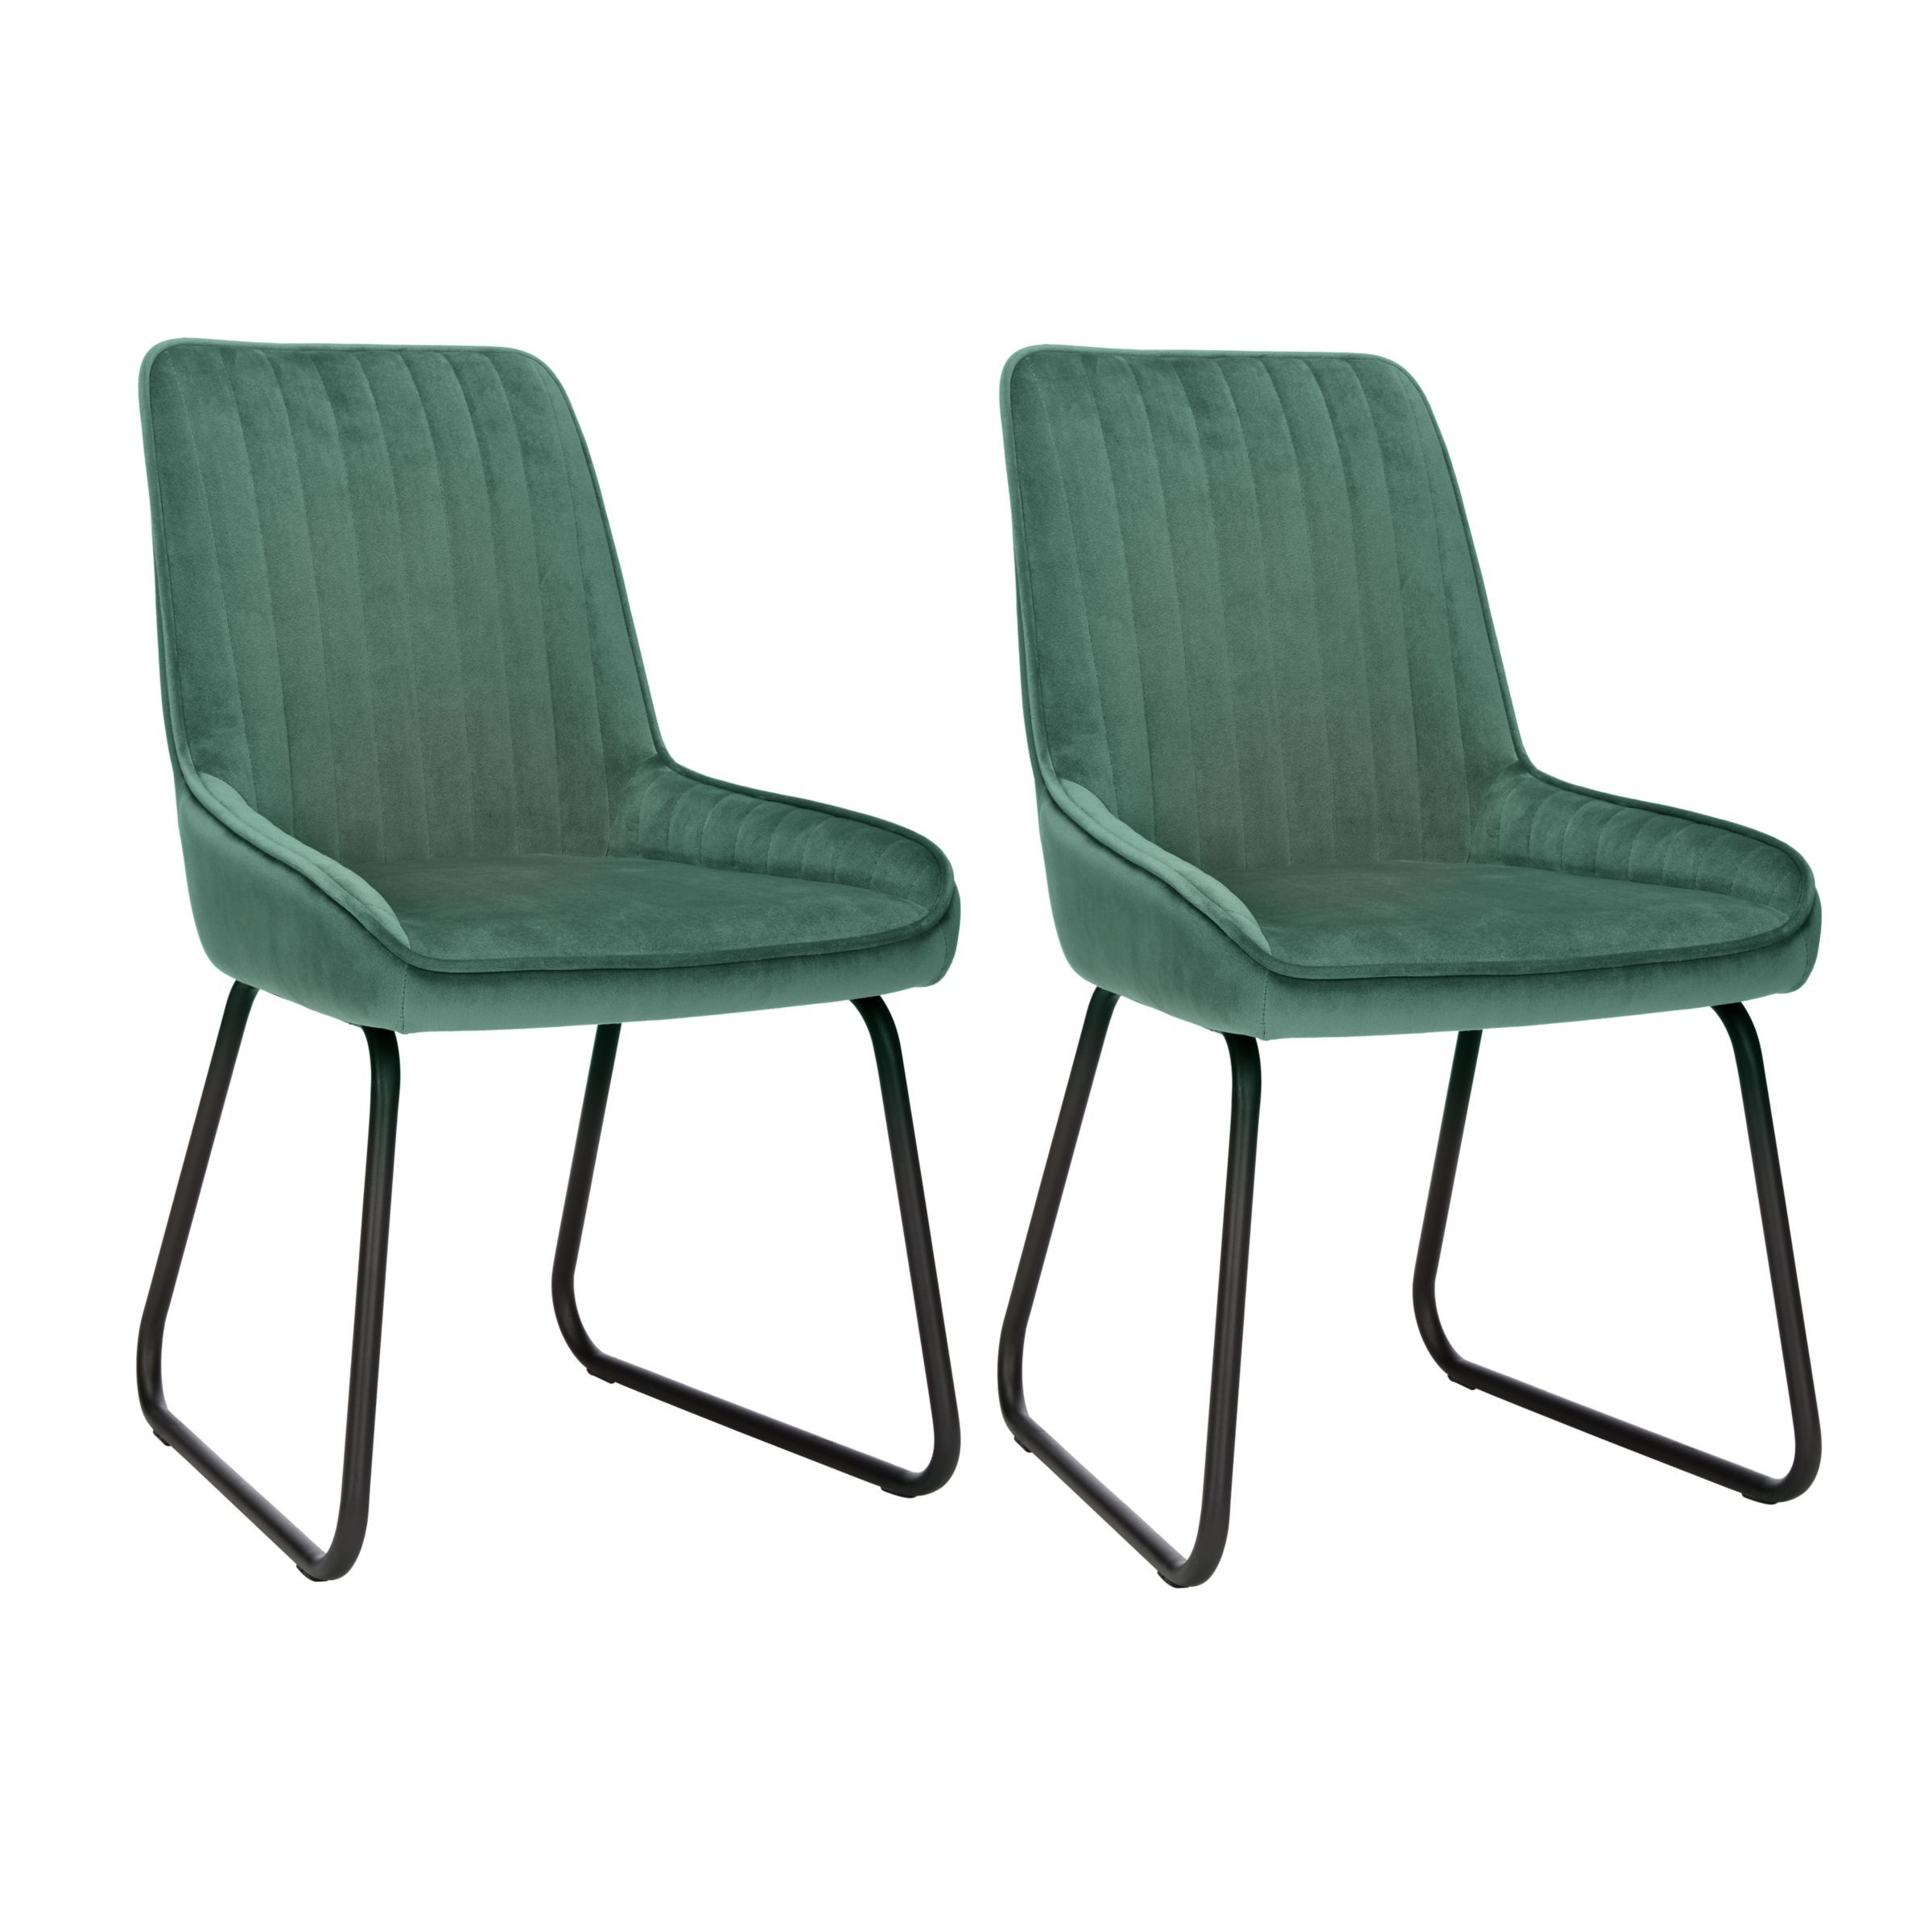 Strange John Lewis Partners Brooks Velvet Side Dining Chairs Set Pabps2019 Chair Design Images Pabps2019Com